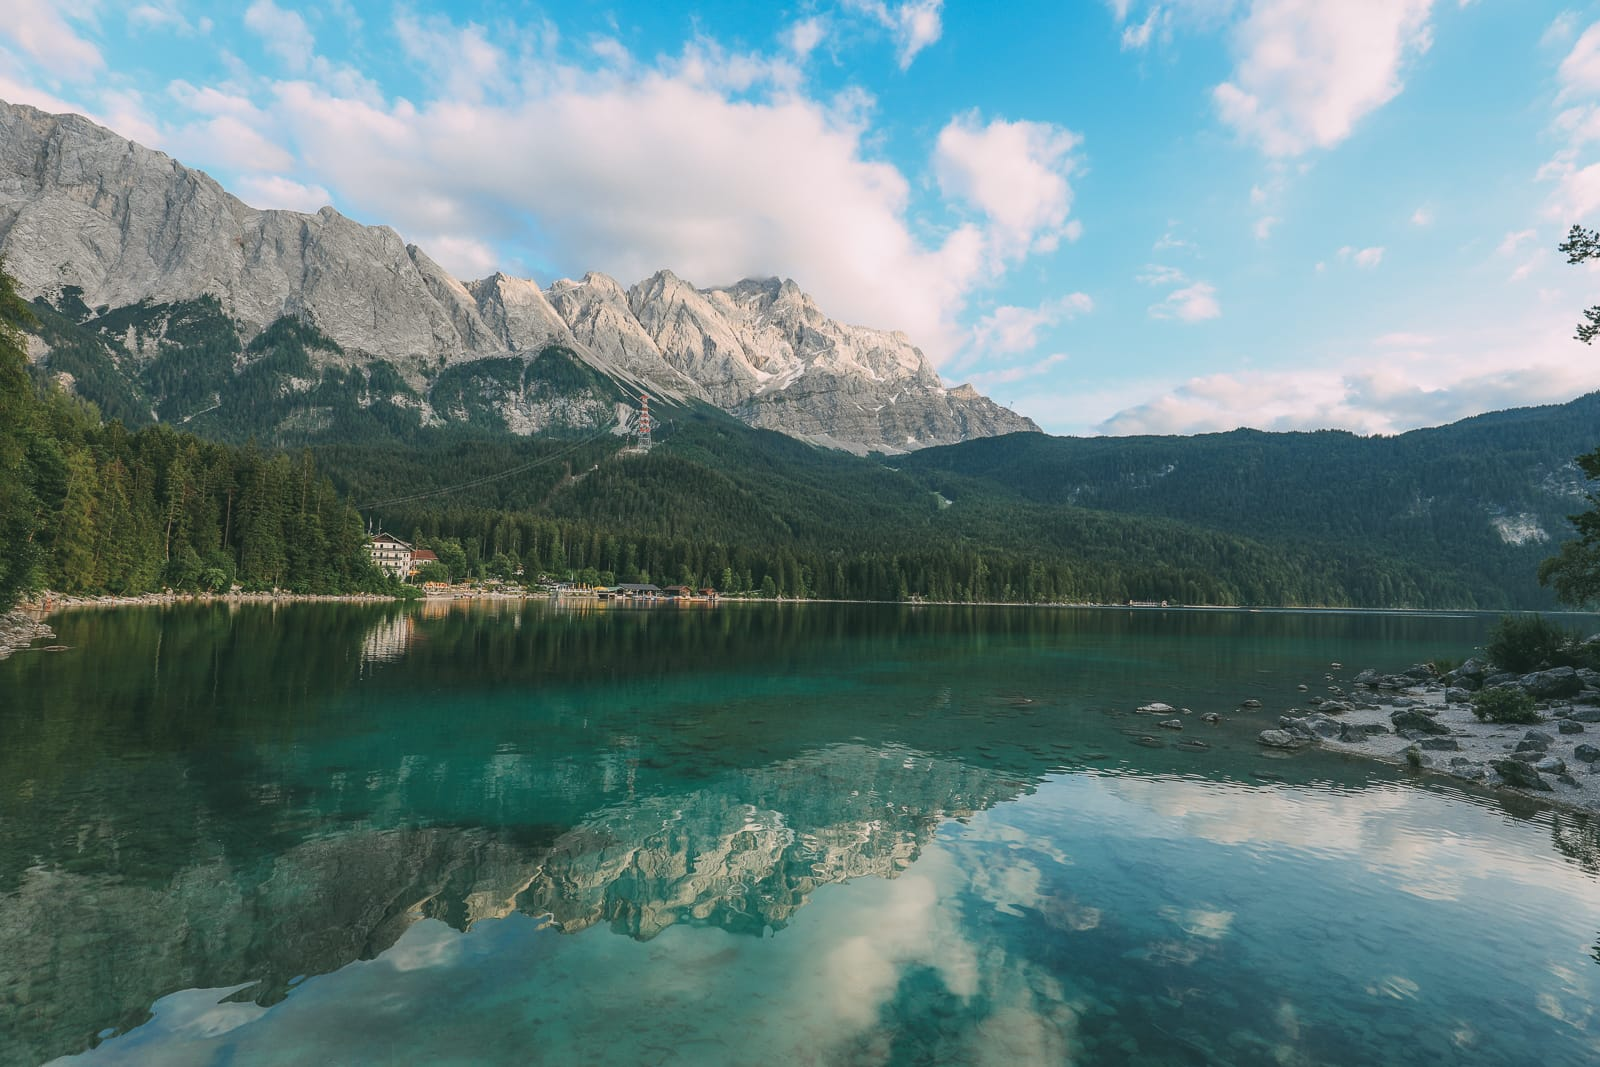 Zugspitze And Eibsee - The Tallest Mountain And One Of The Most Beautiful Lakes In Germany! (39)